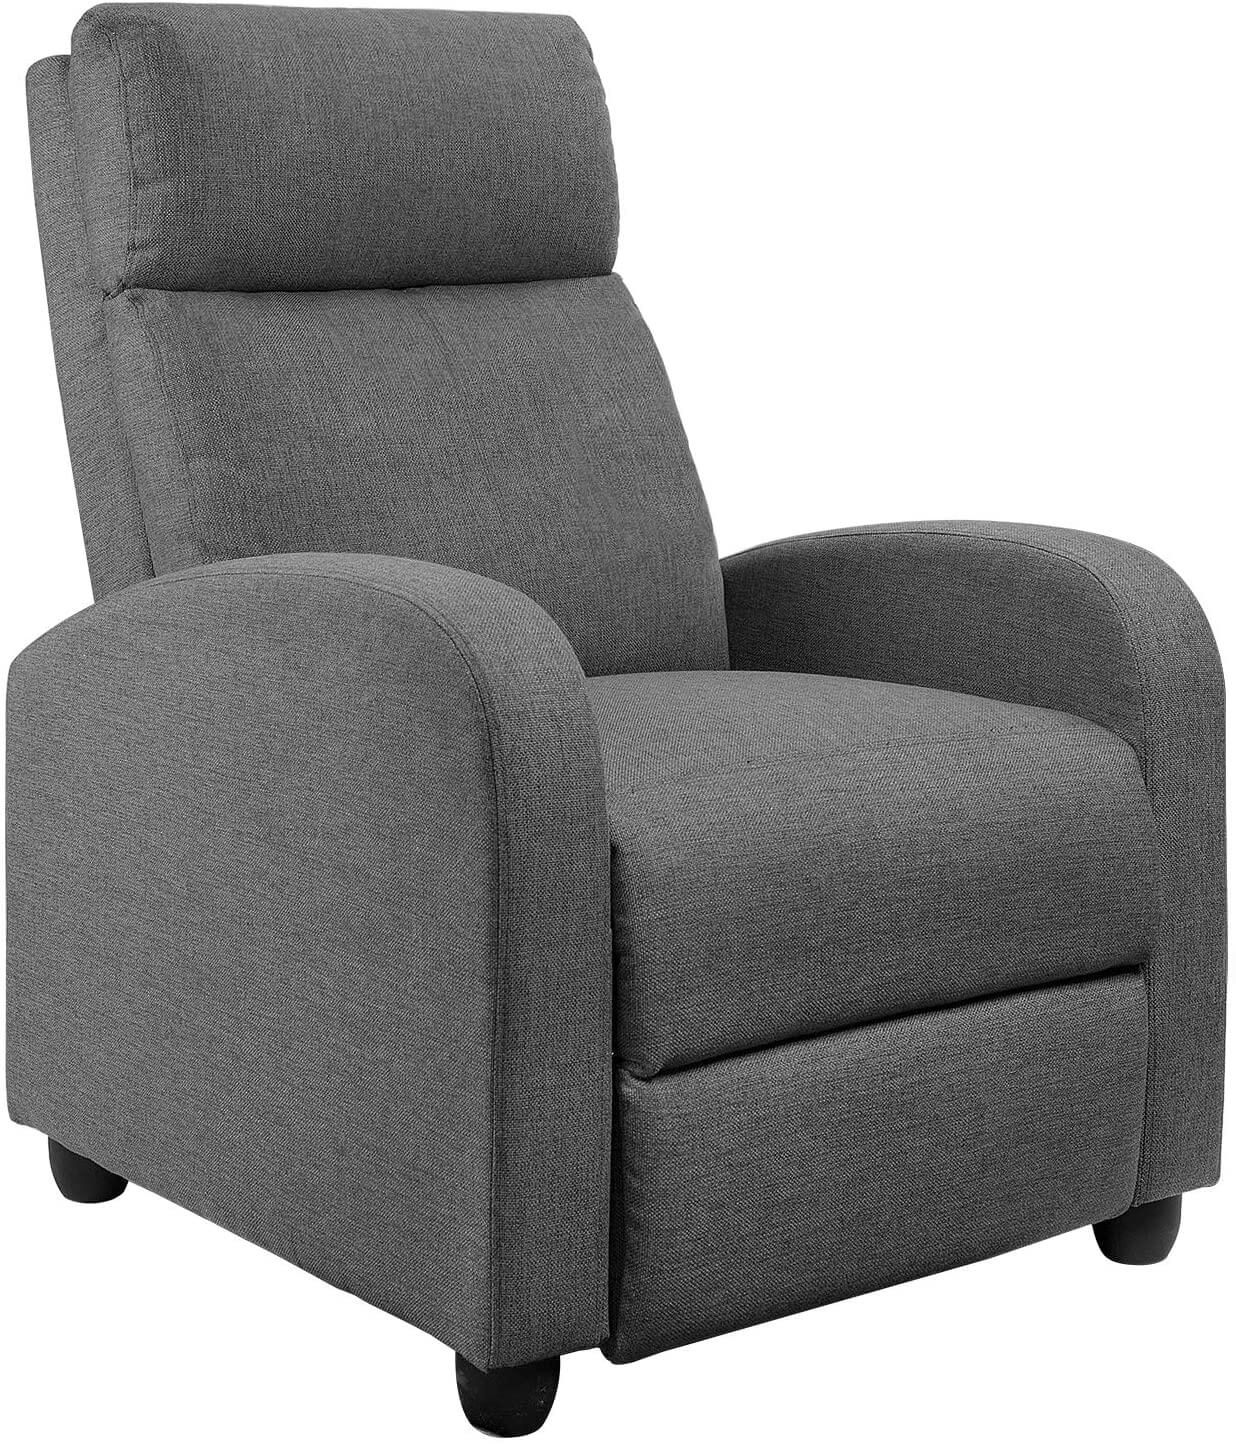 UMMICO Fabric Recliner Chair